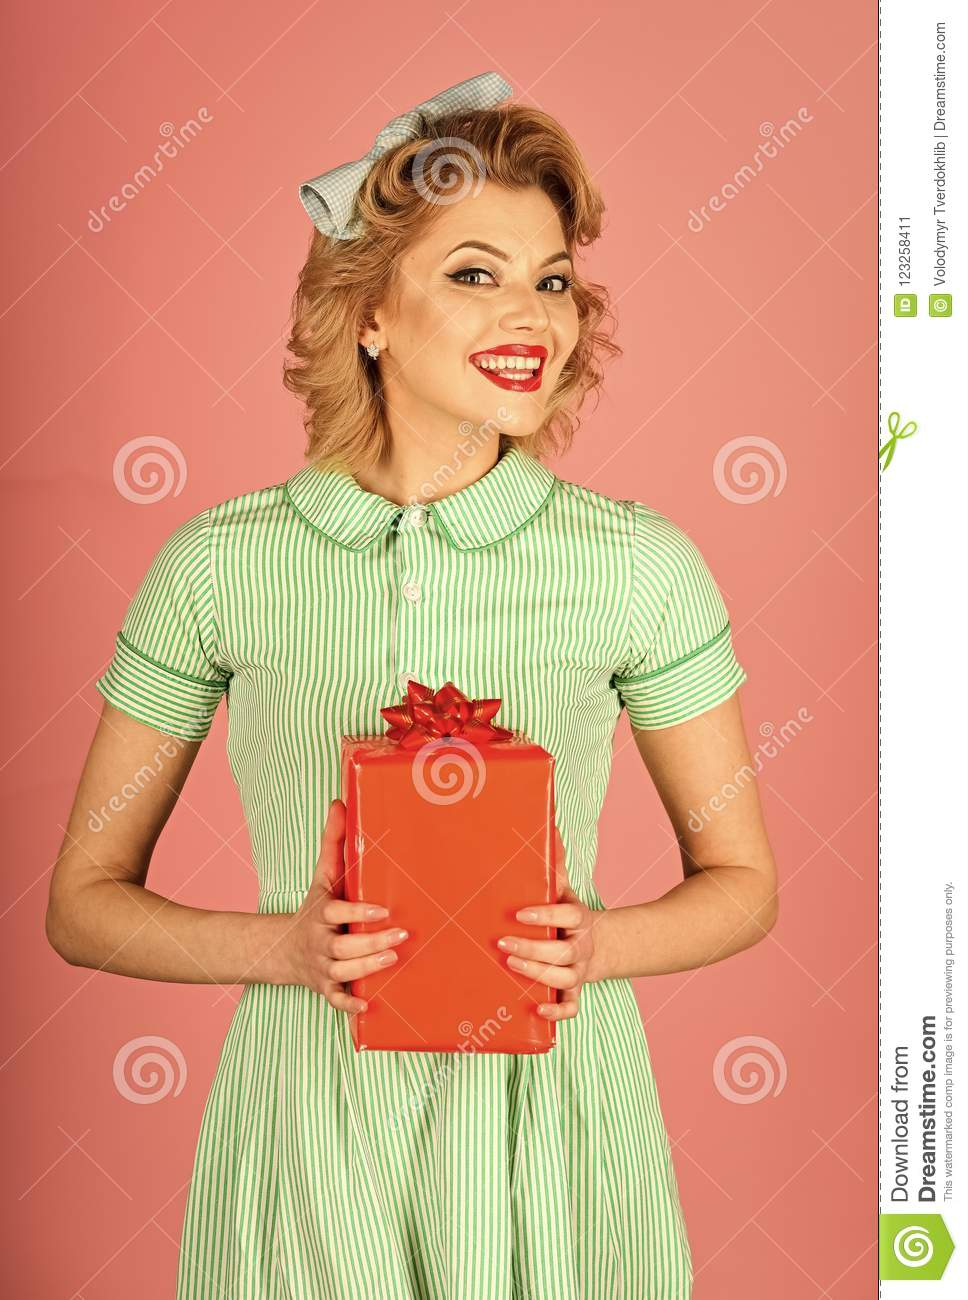 Happy Holiday Celebration Vintage Party Retro Woman With Present